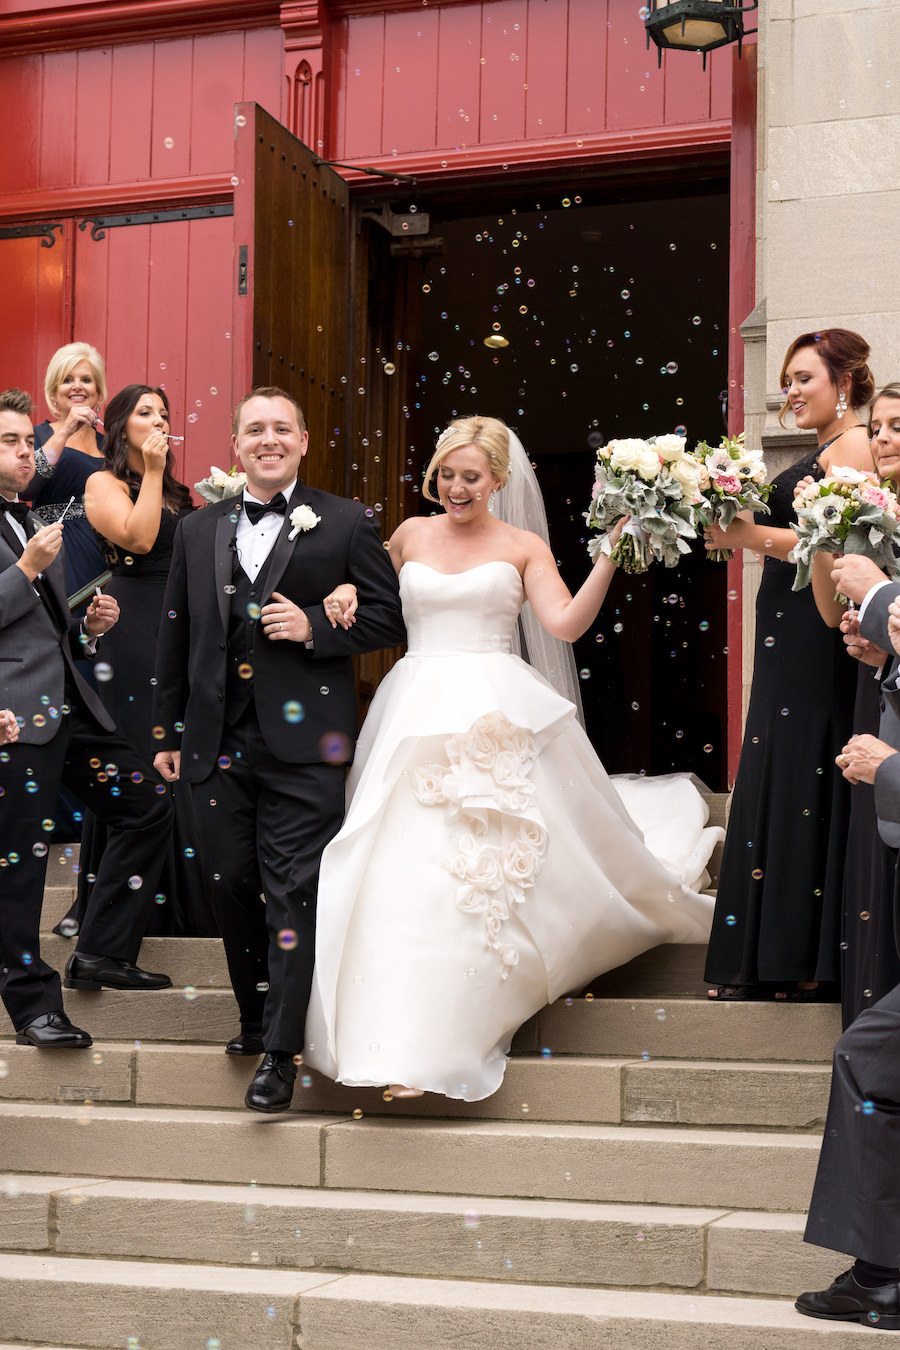 A bride and groom walking out of the church of their Kalamazoo, Michigan wedding